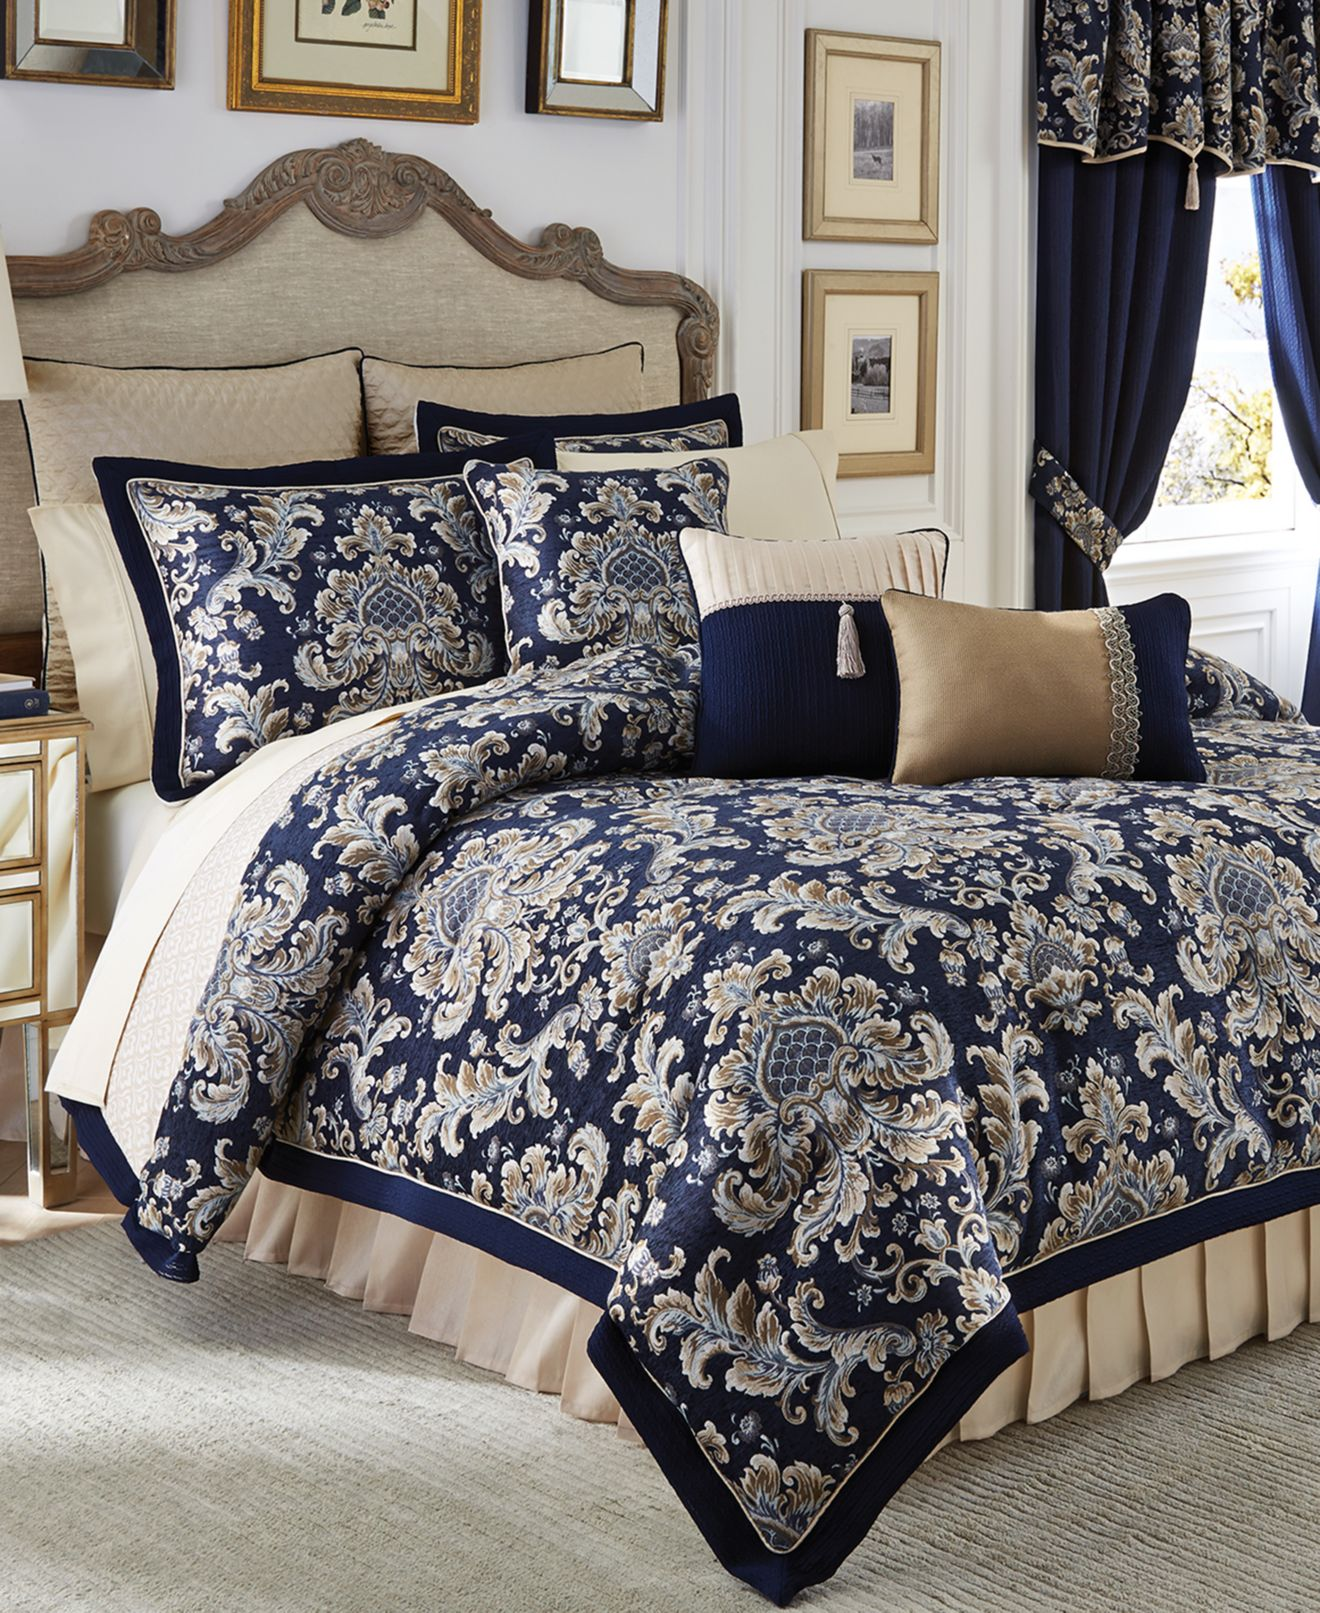 macys bedding sets awesome bed. macys bed comforter sets home